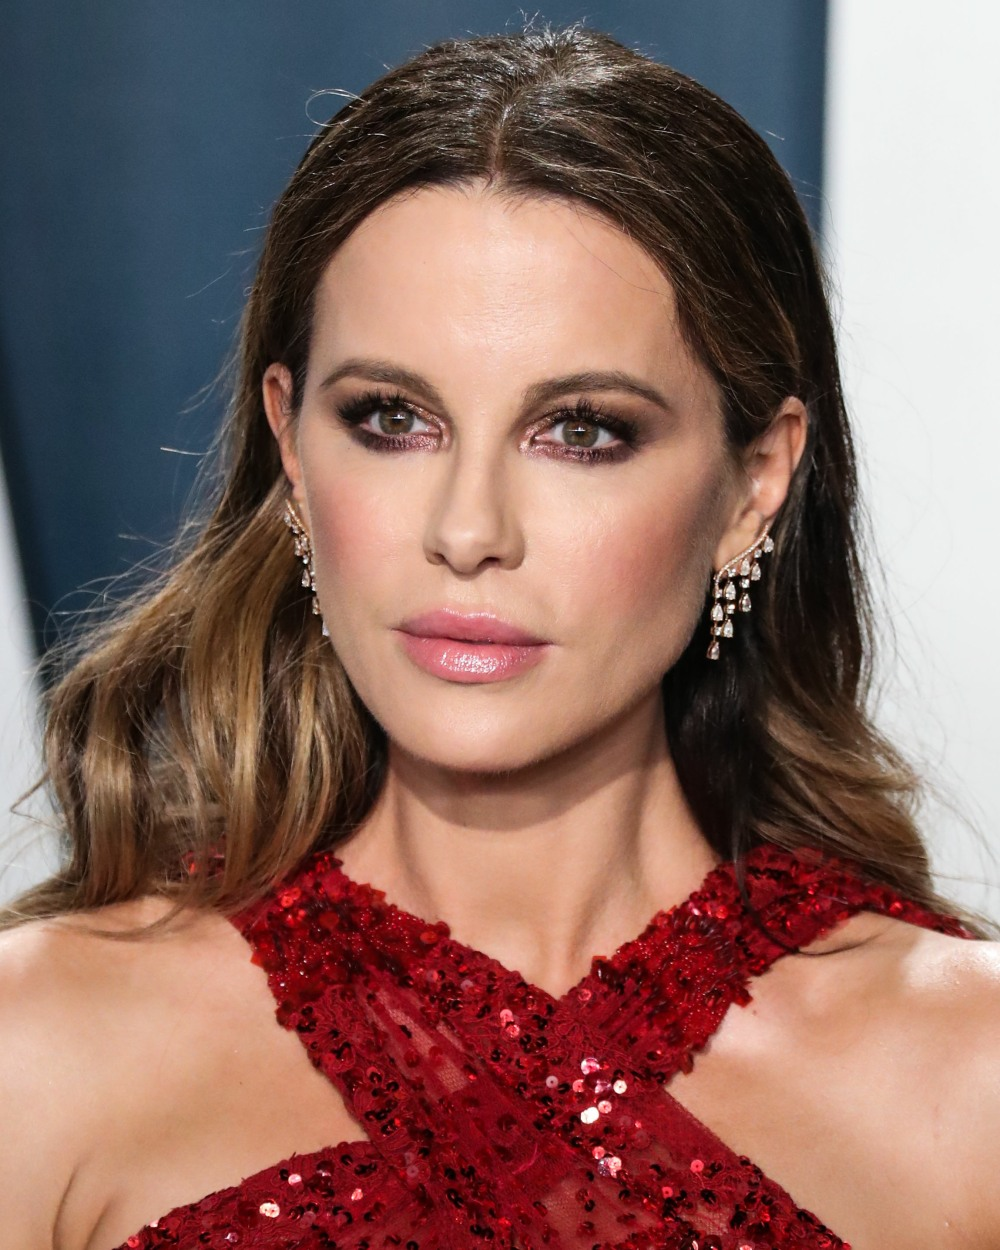 Actress Kate Beckinsale arrives at the 2020 Vanity Fair Oscar Party held at the Wallis Annenberg Cen...